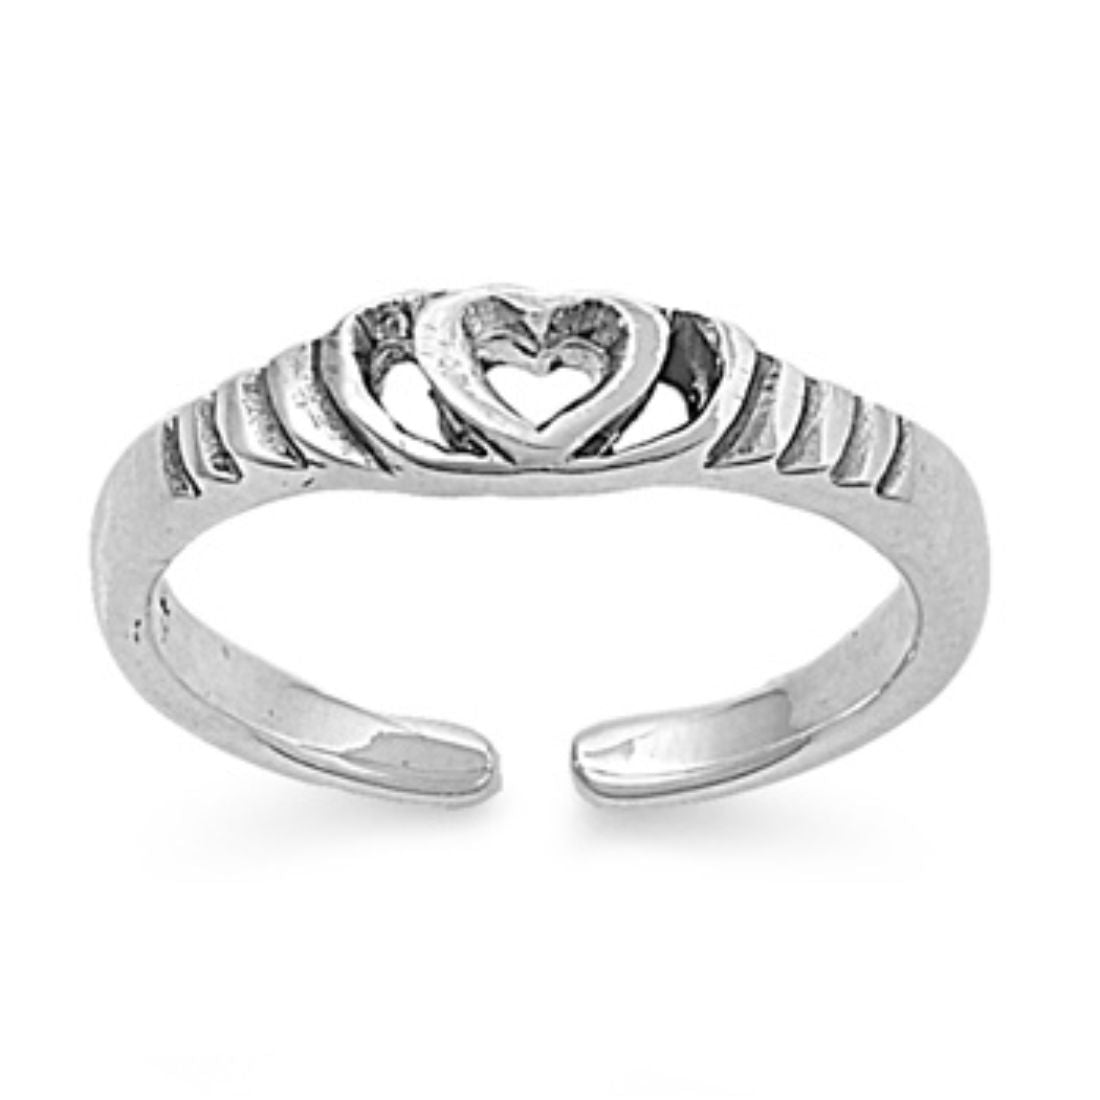 Heart Silver Toe Ring Band Adjustable 925 Sterling Silver (4mm)